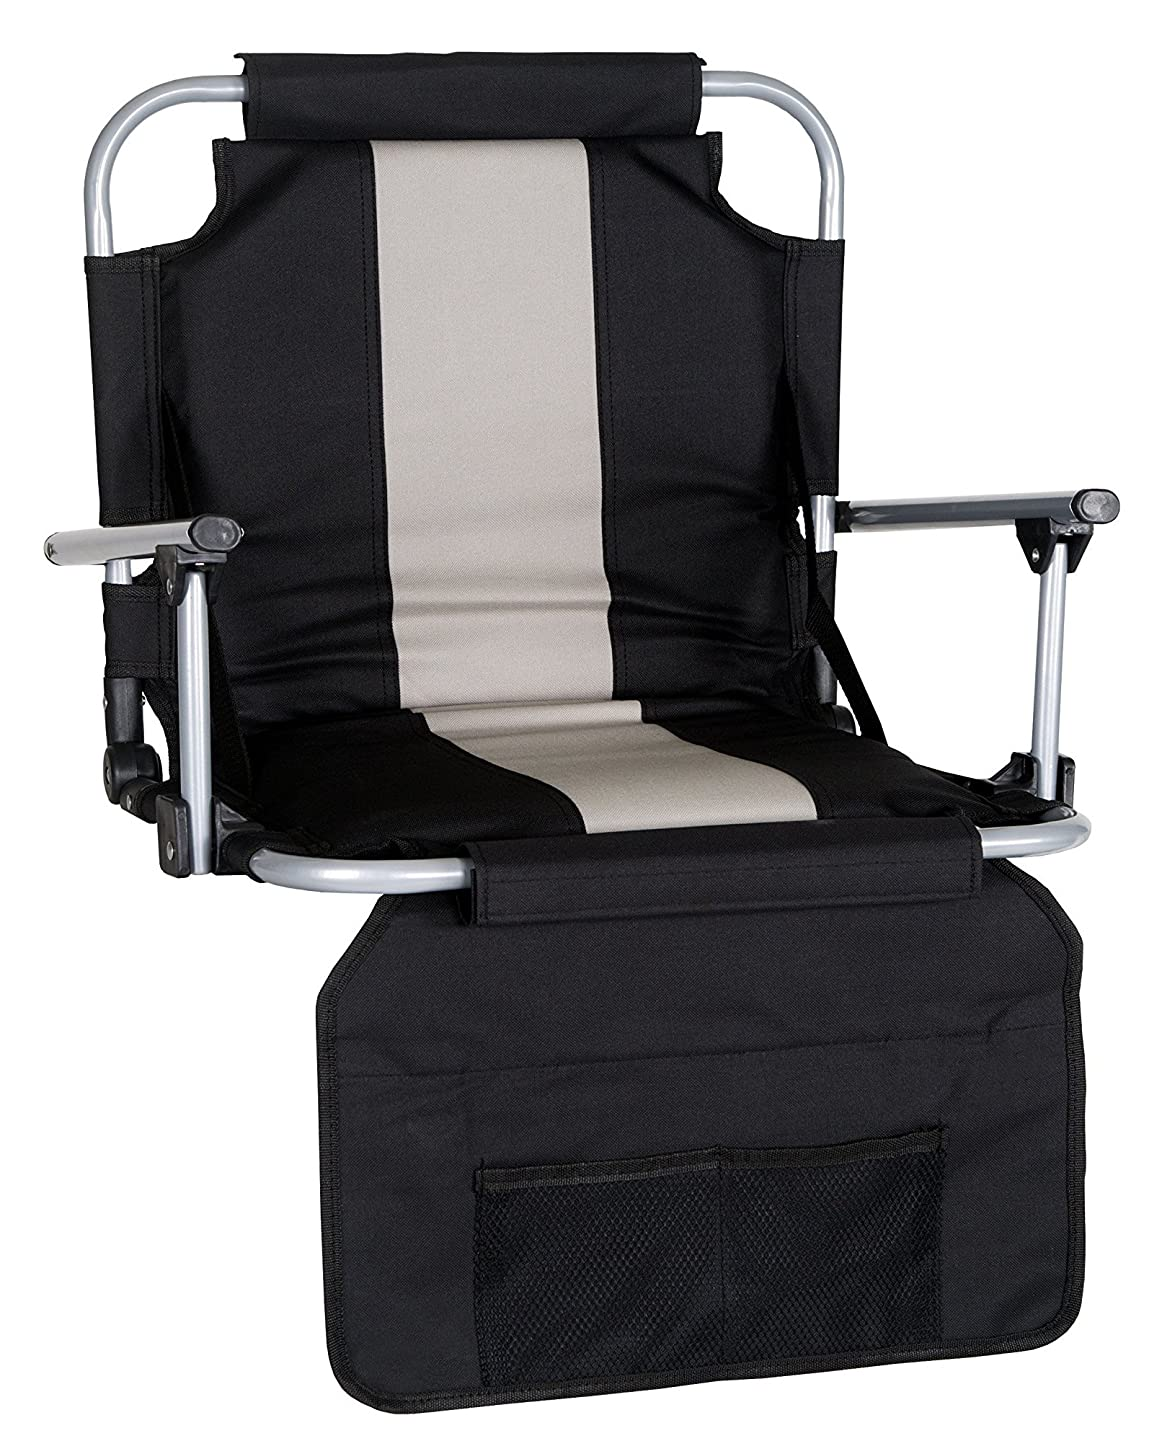 Stansport Folding Stadium Seat with Arms